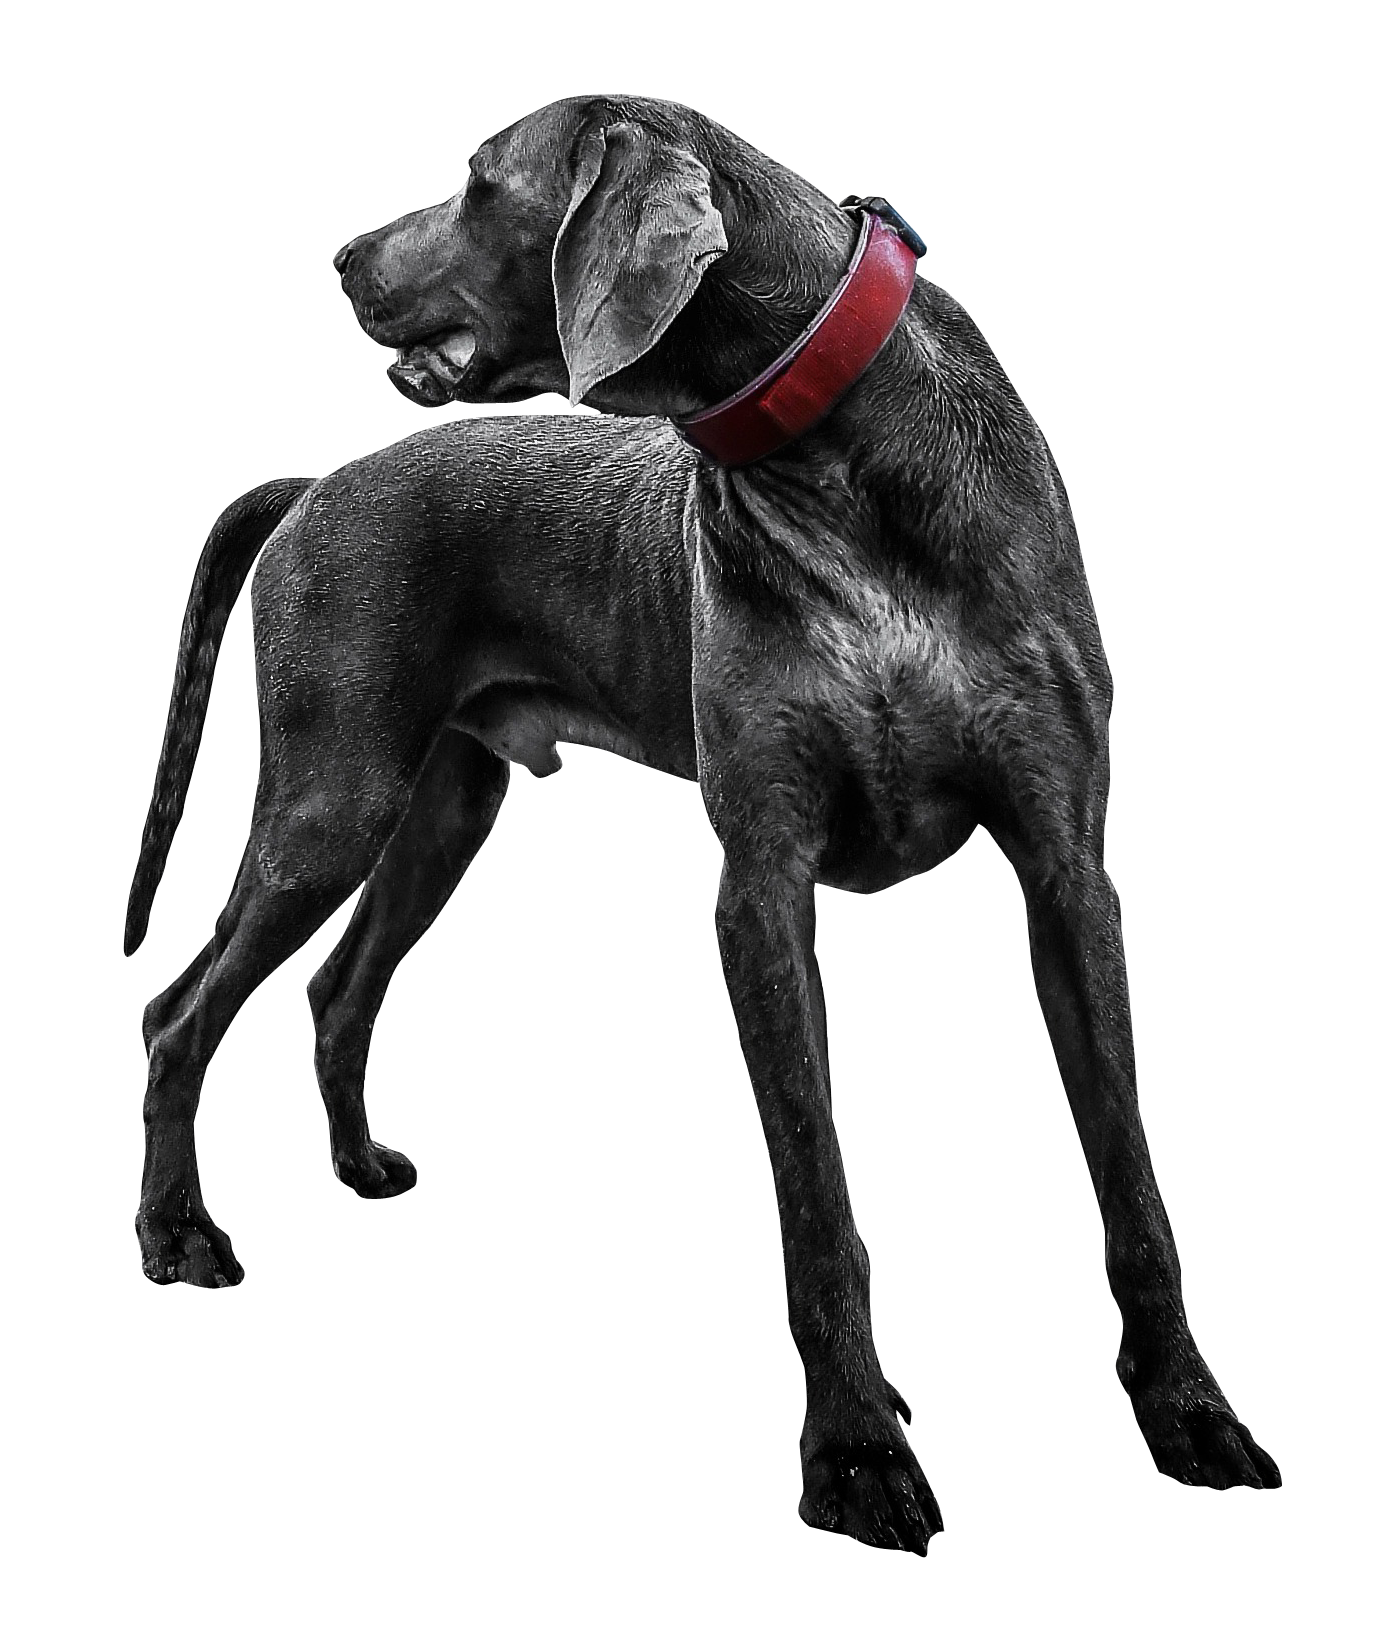 Black dog png. Labrador transparent image pngpix